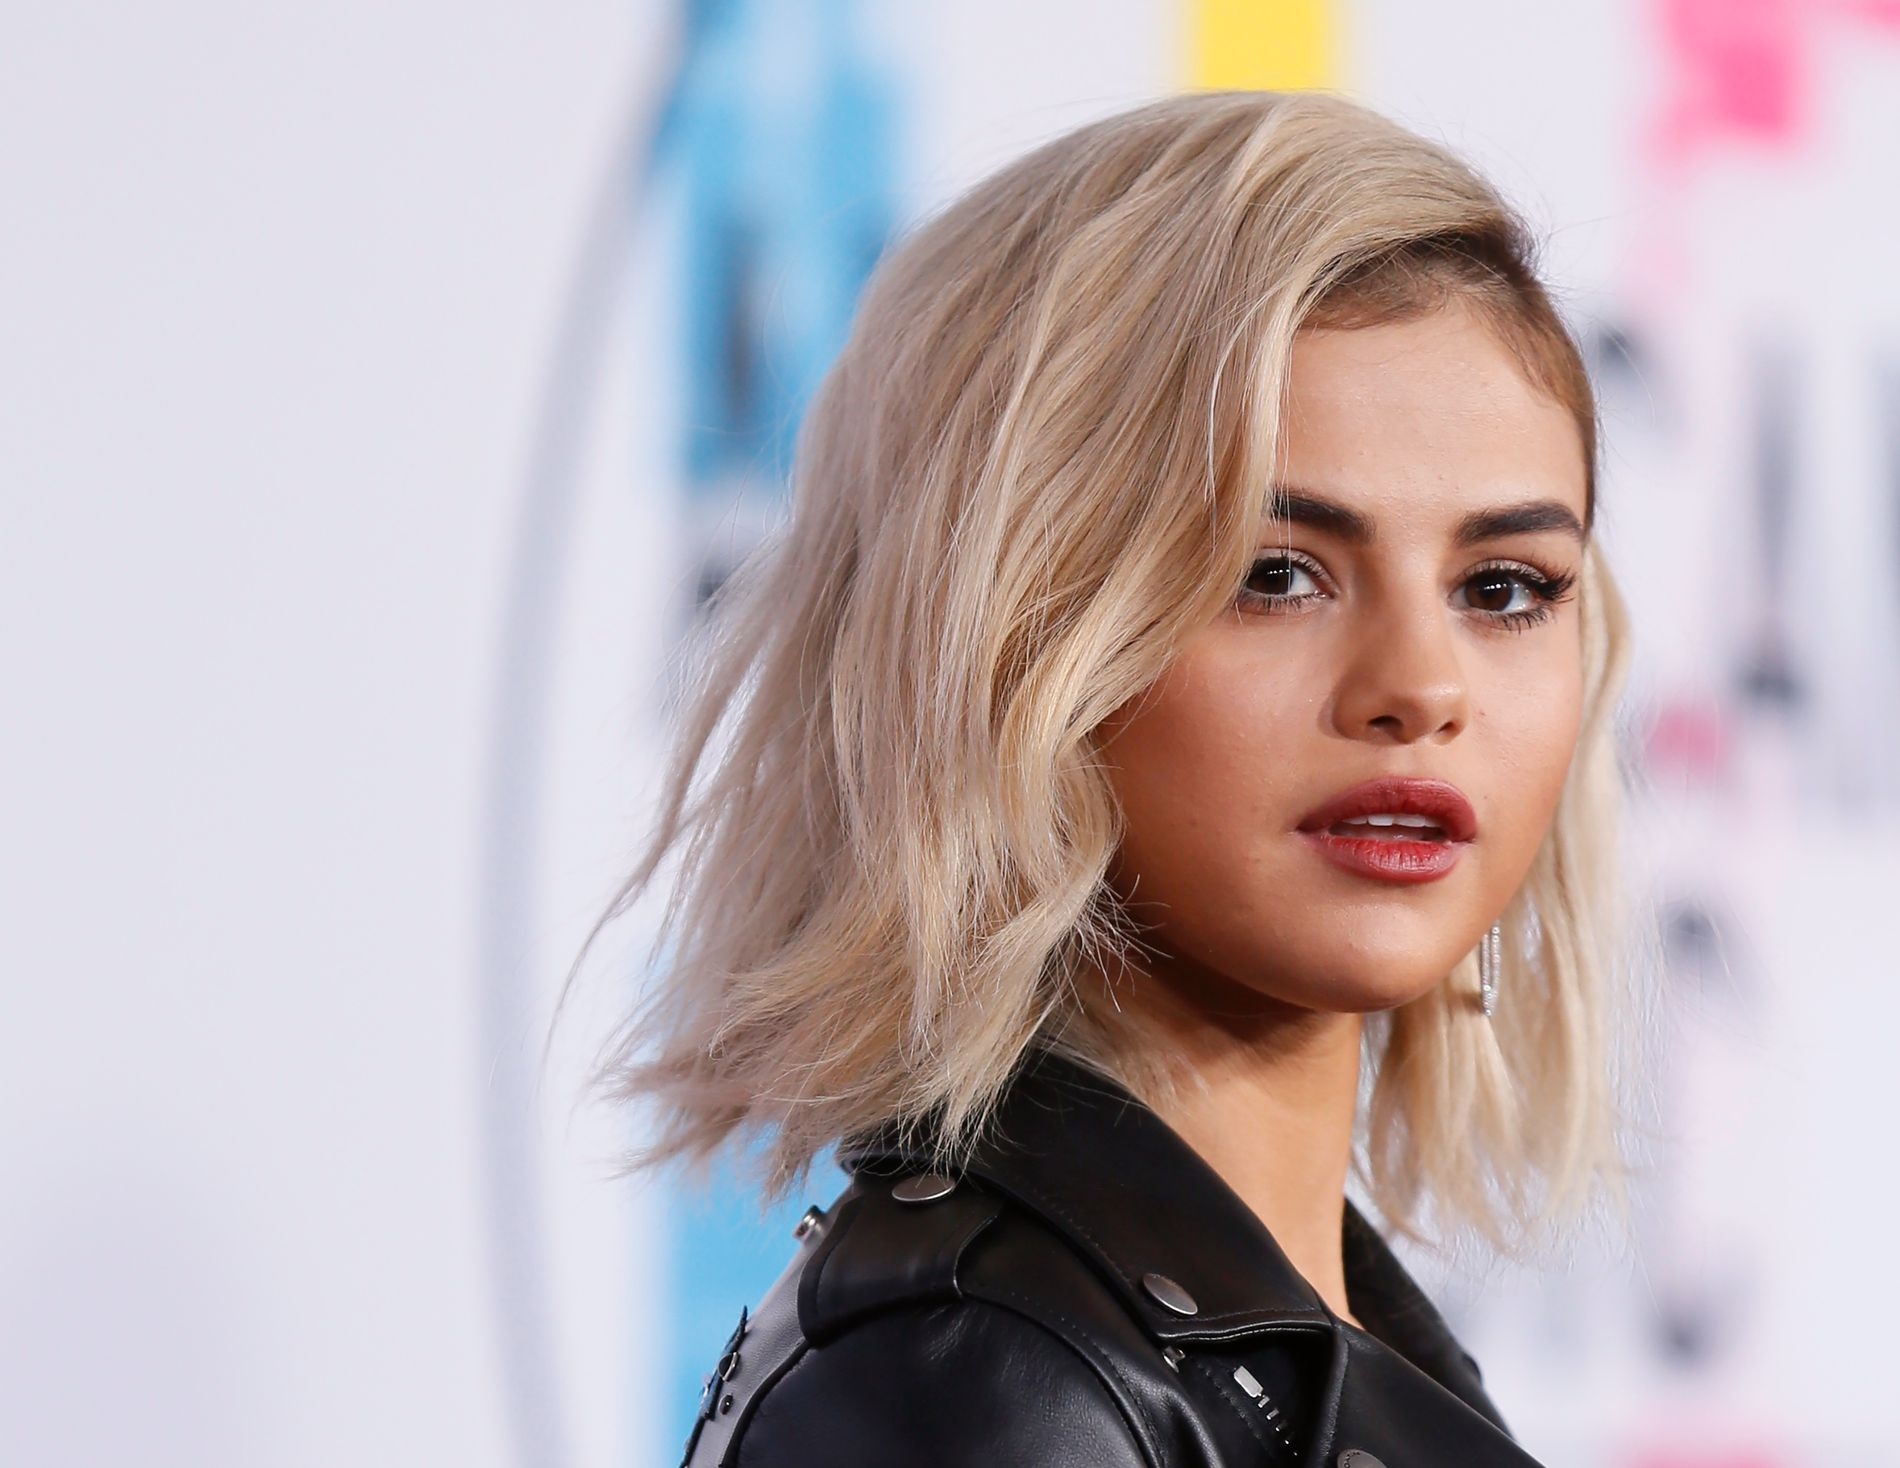 NY LOOK: Selena Gomez stilte med korte, blonde lokker på American Music Awards i Los Angeles i november.